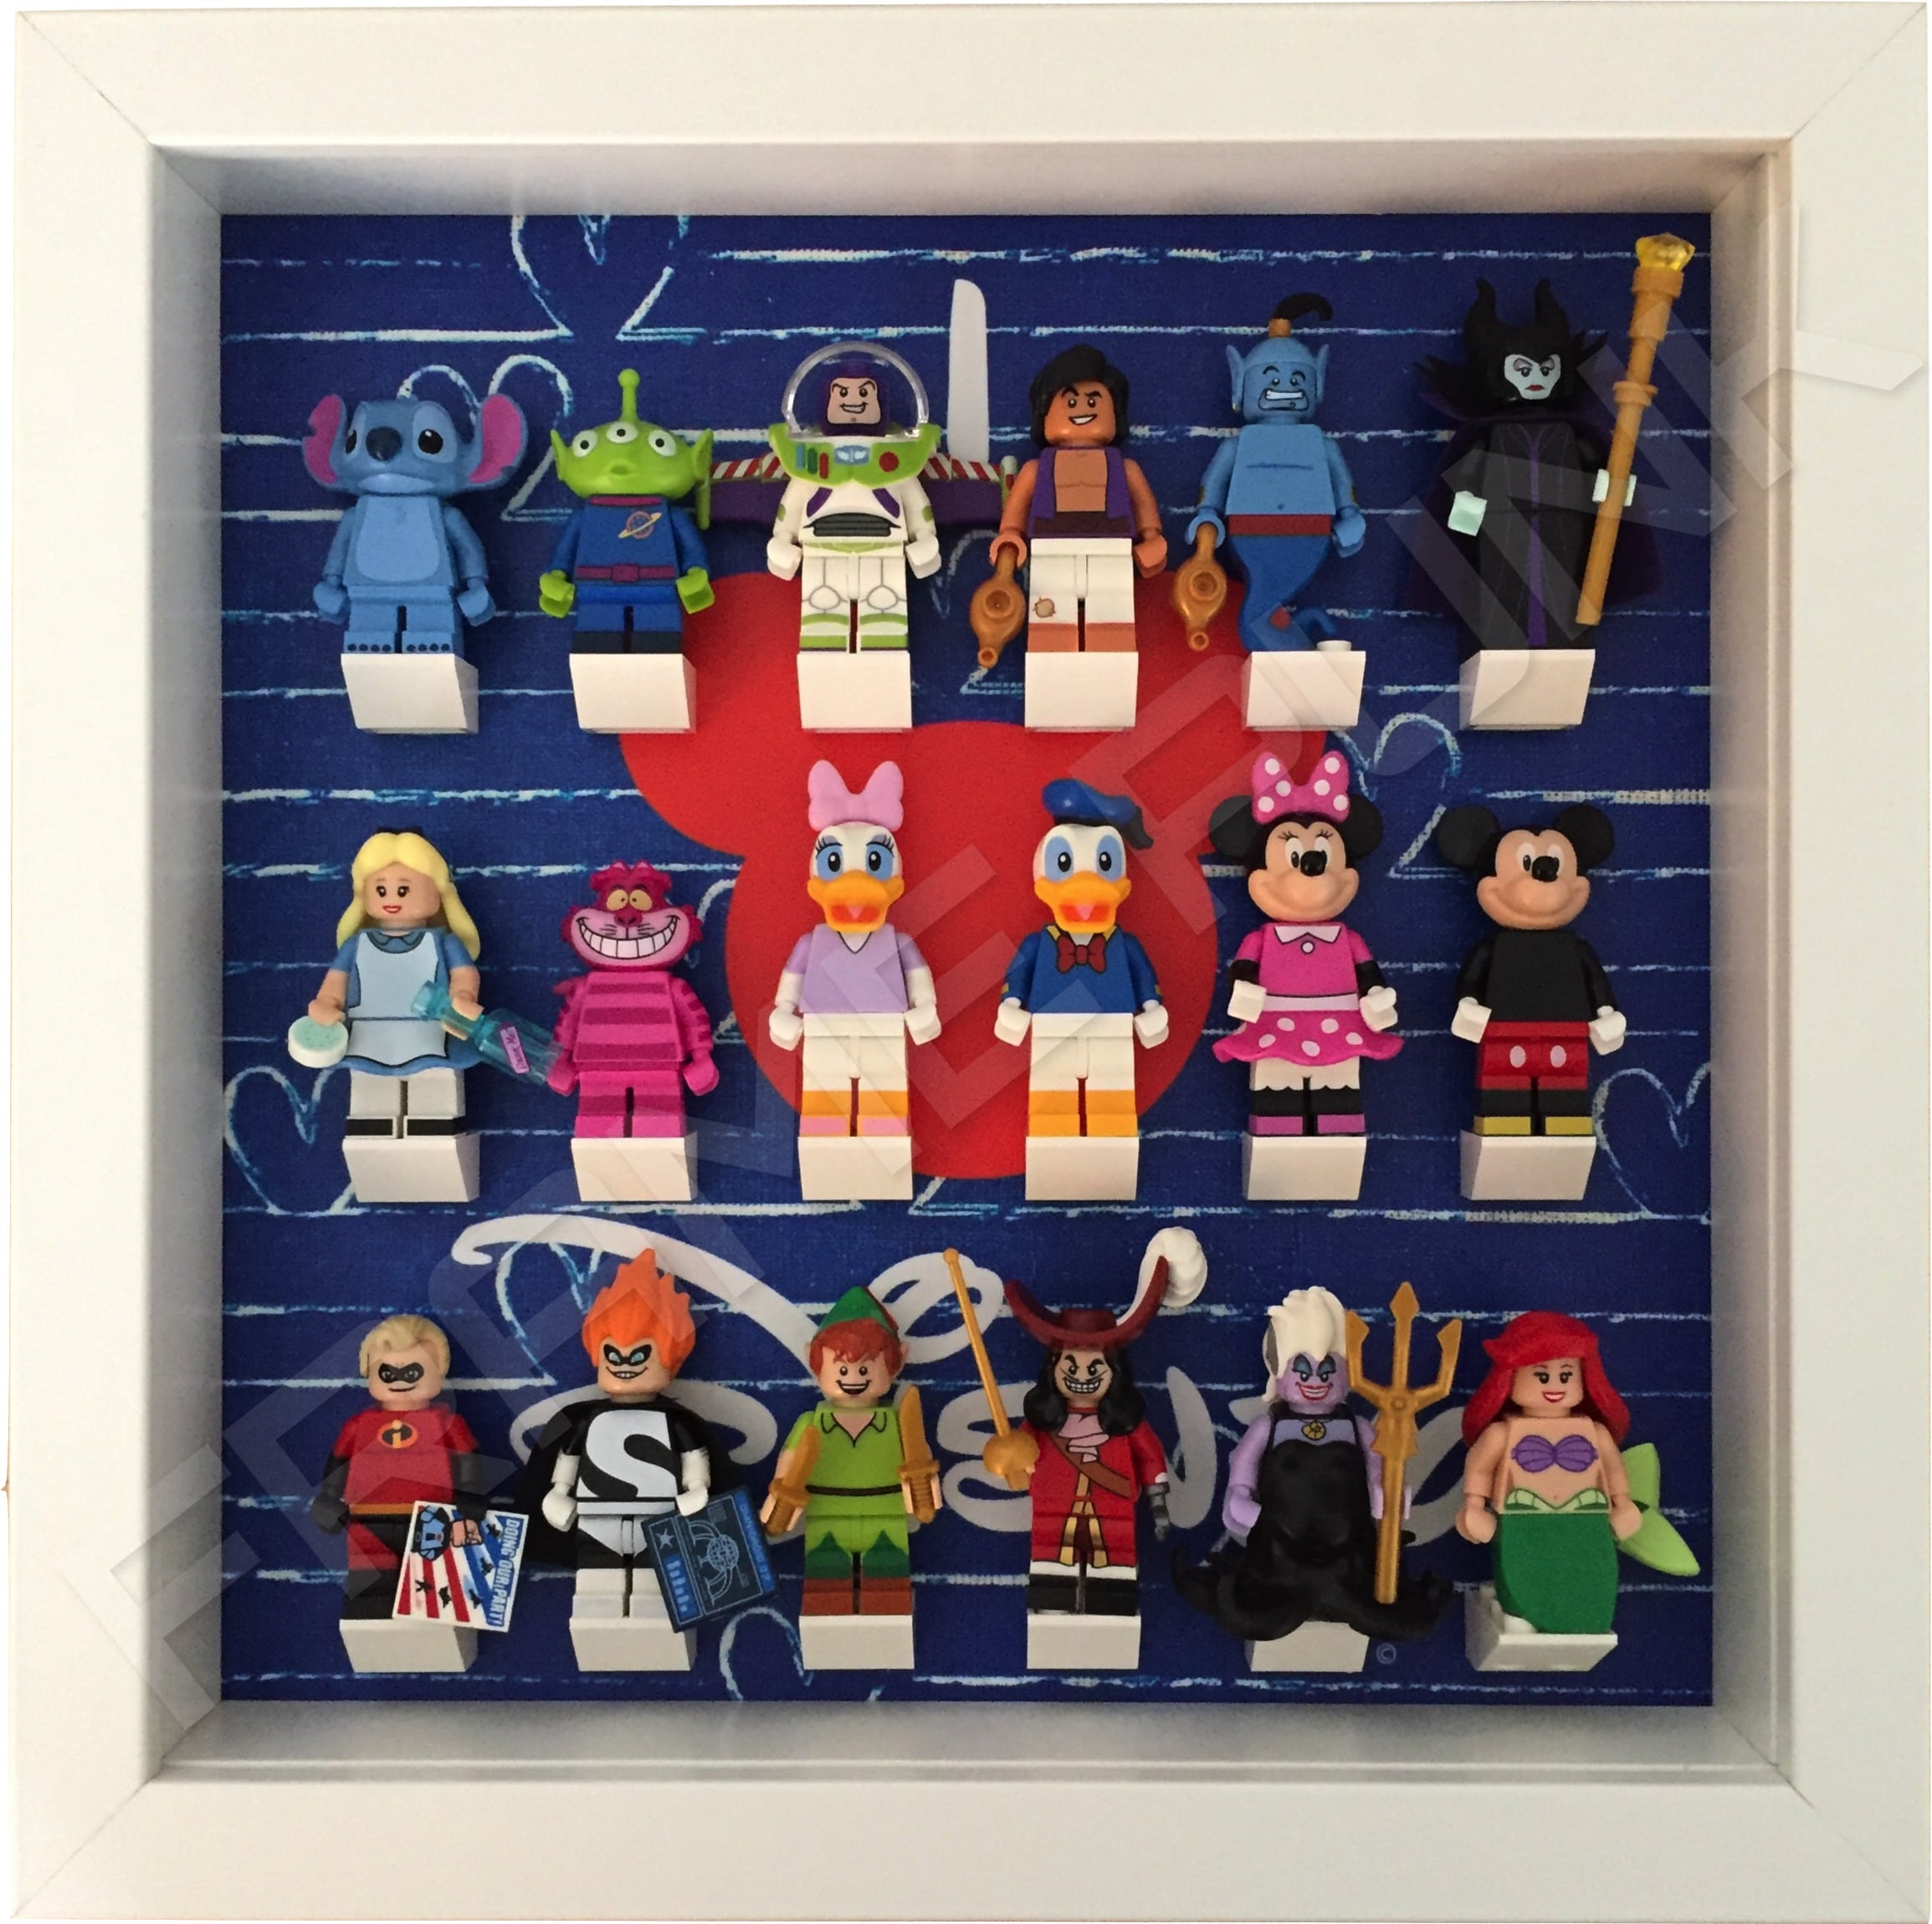 I Love Disney Lego Minifig White Display Frame - Frame Punk